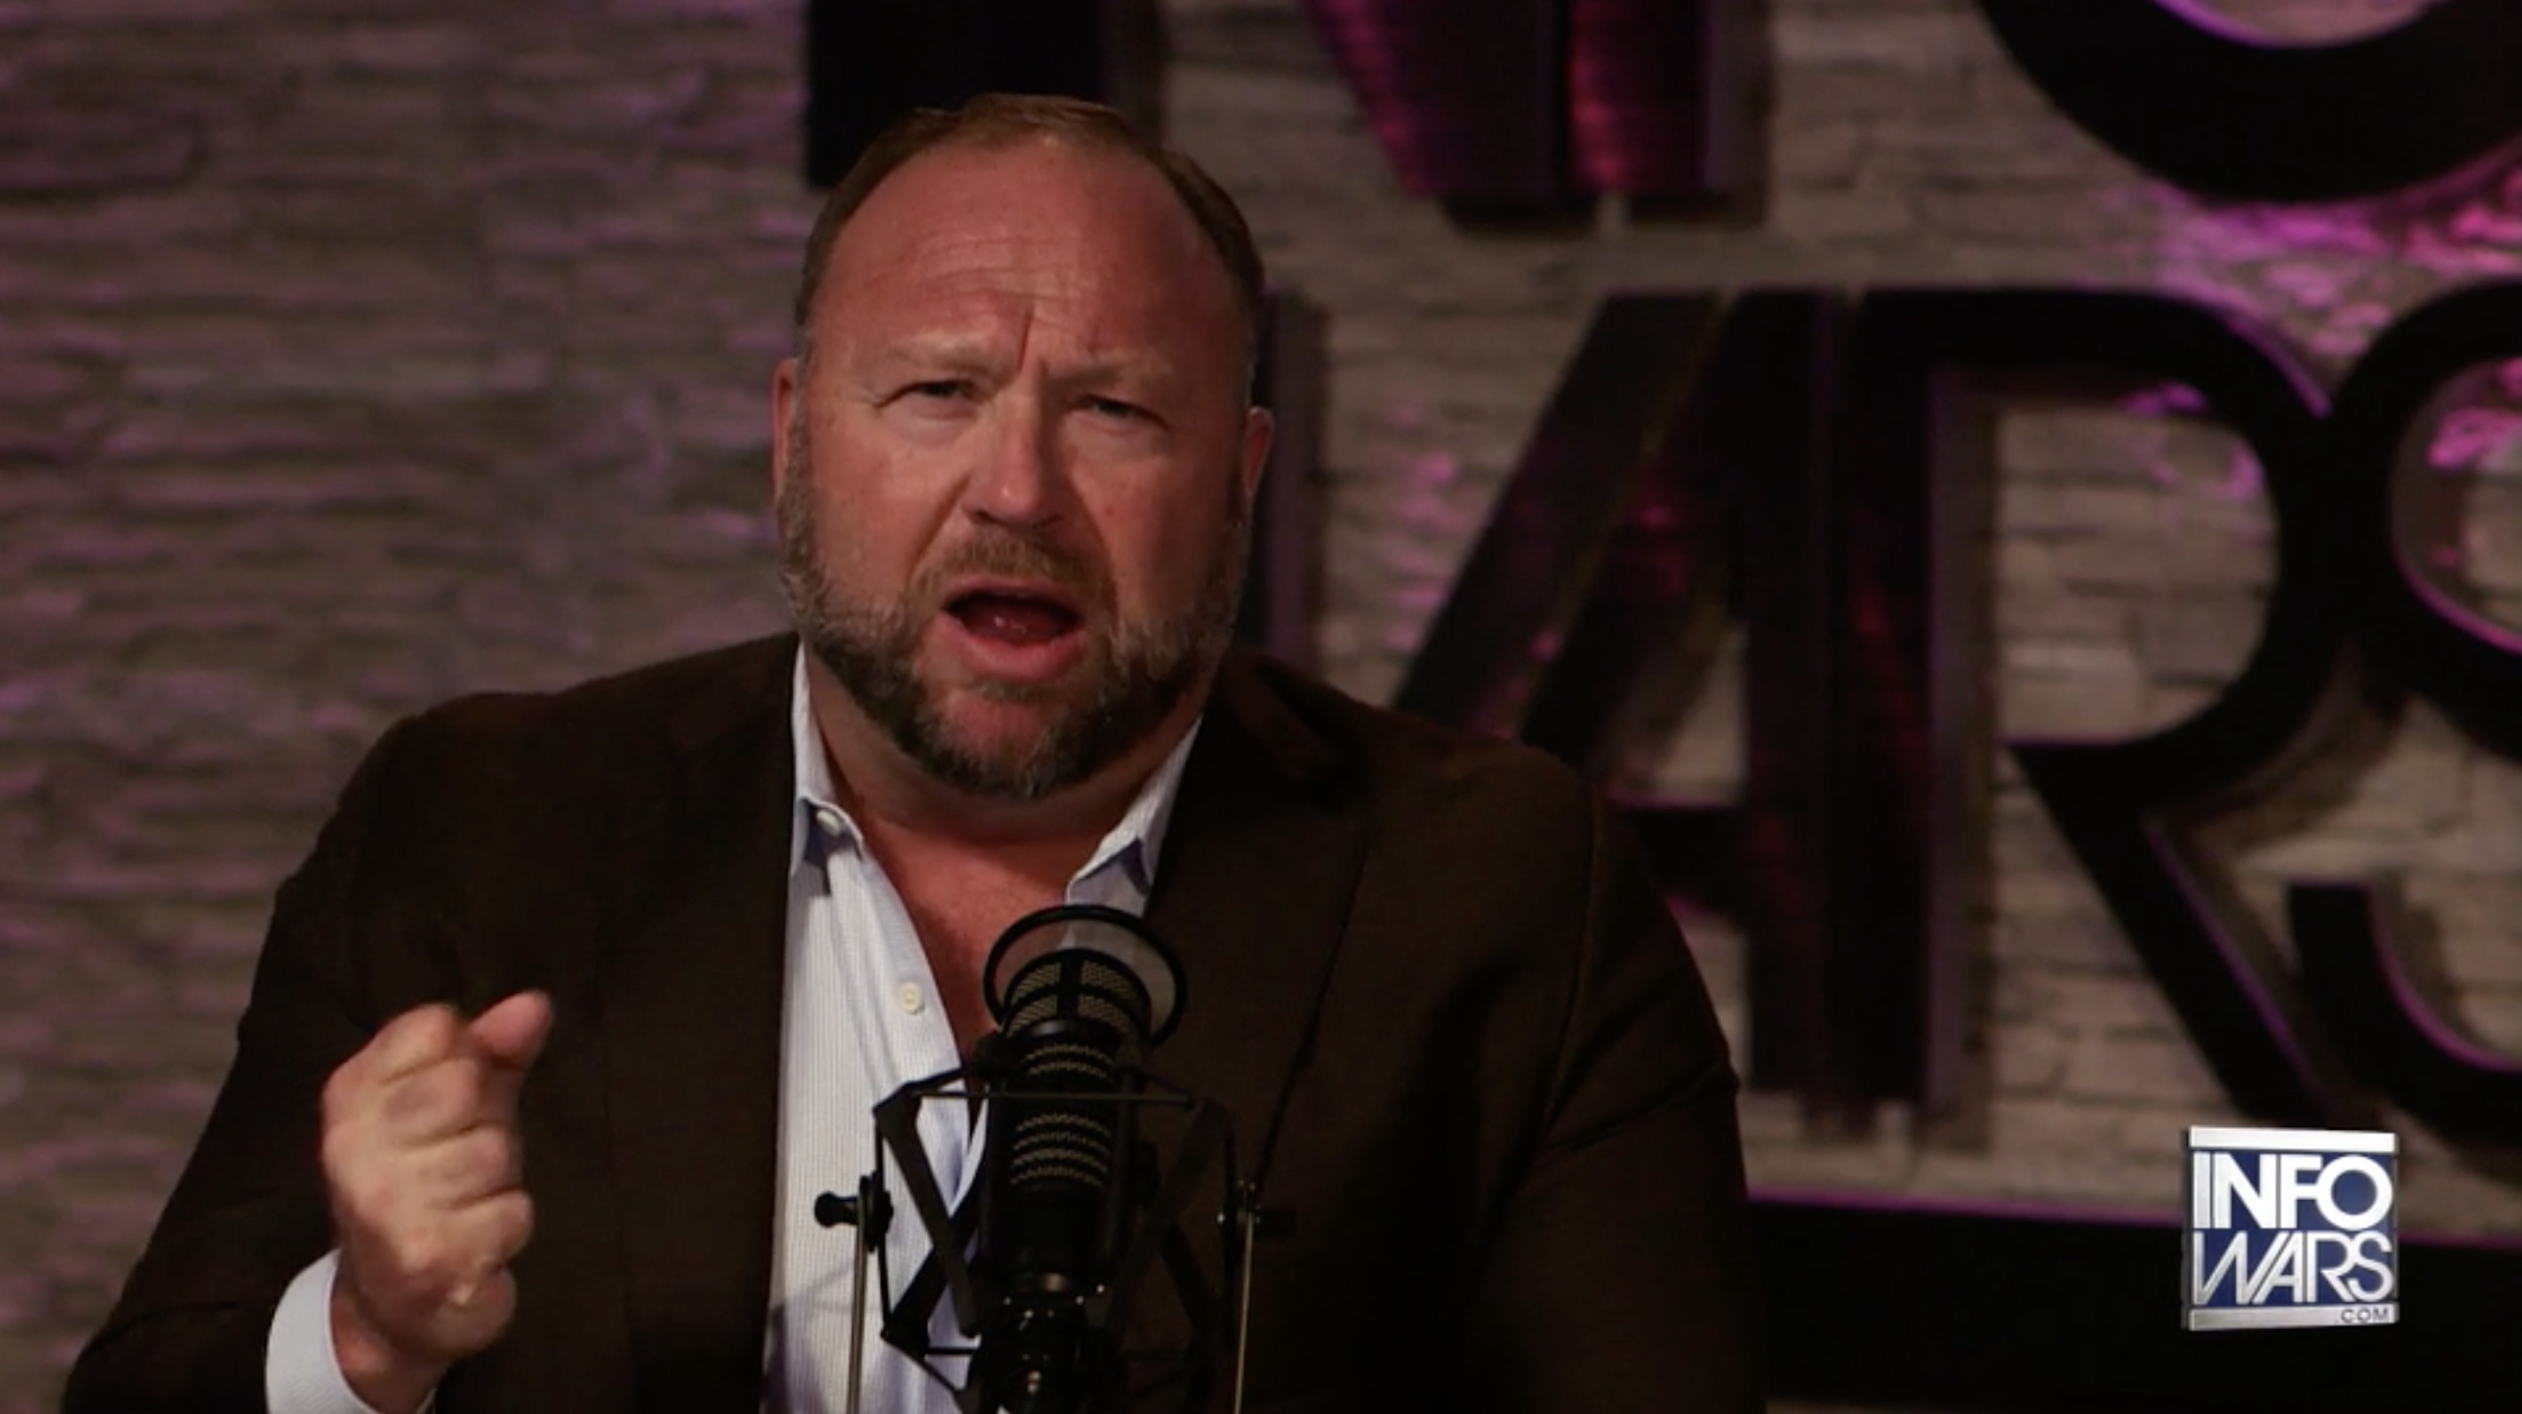 Alex Jones Infowars Studio EXZM September 7th 2020